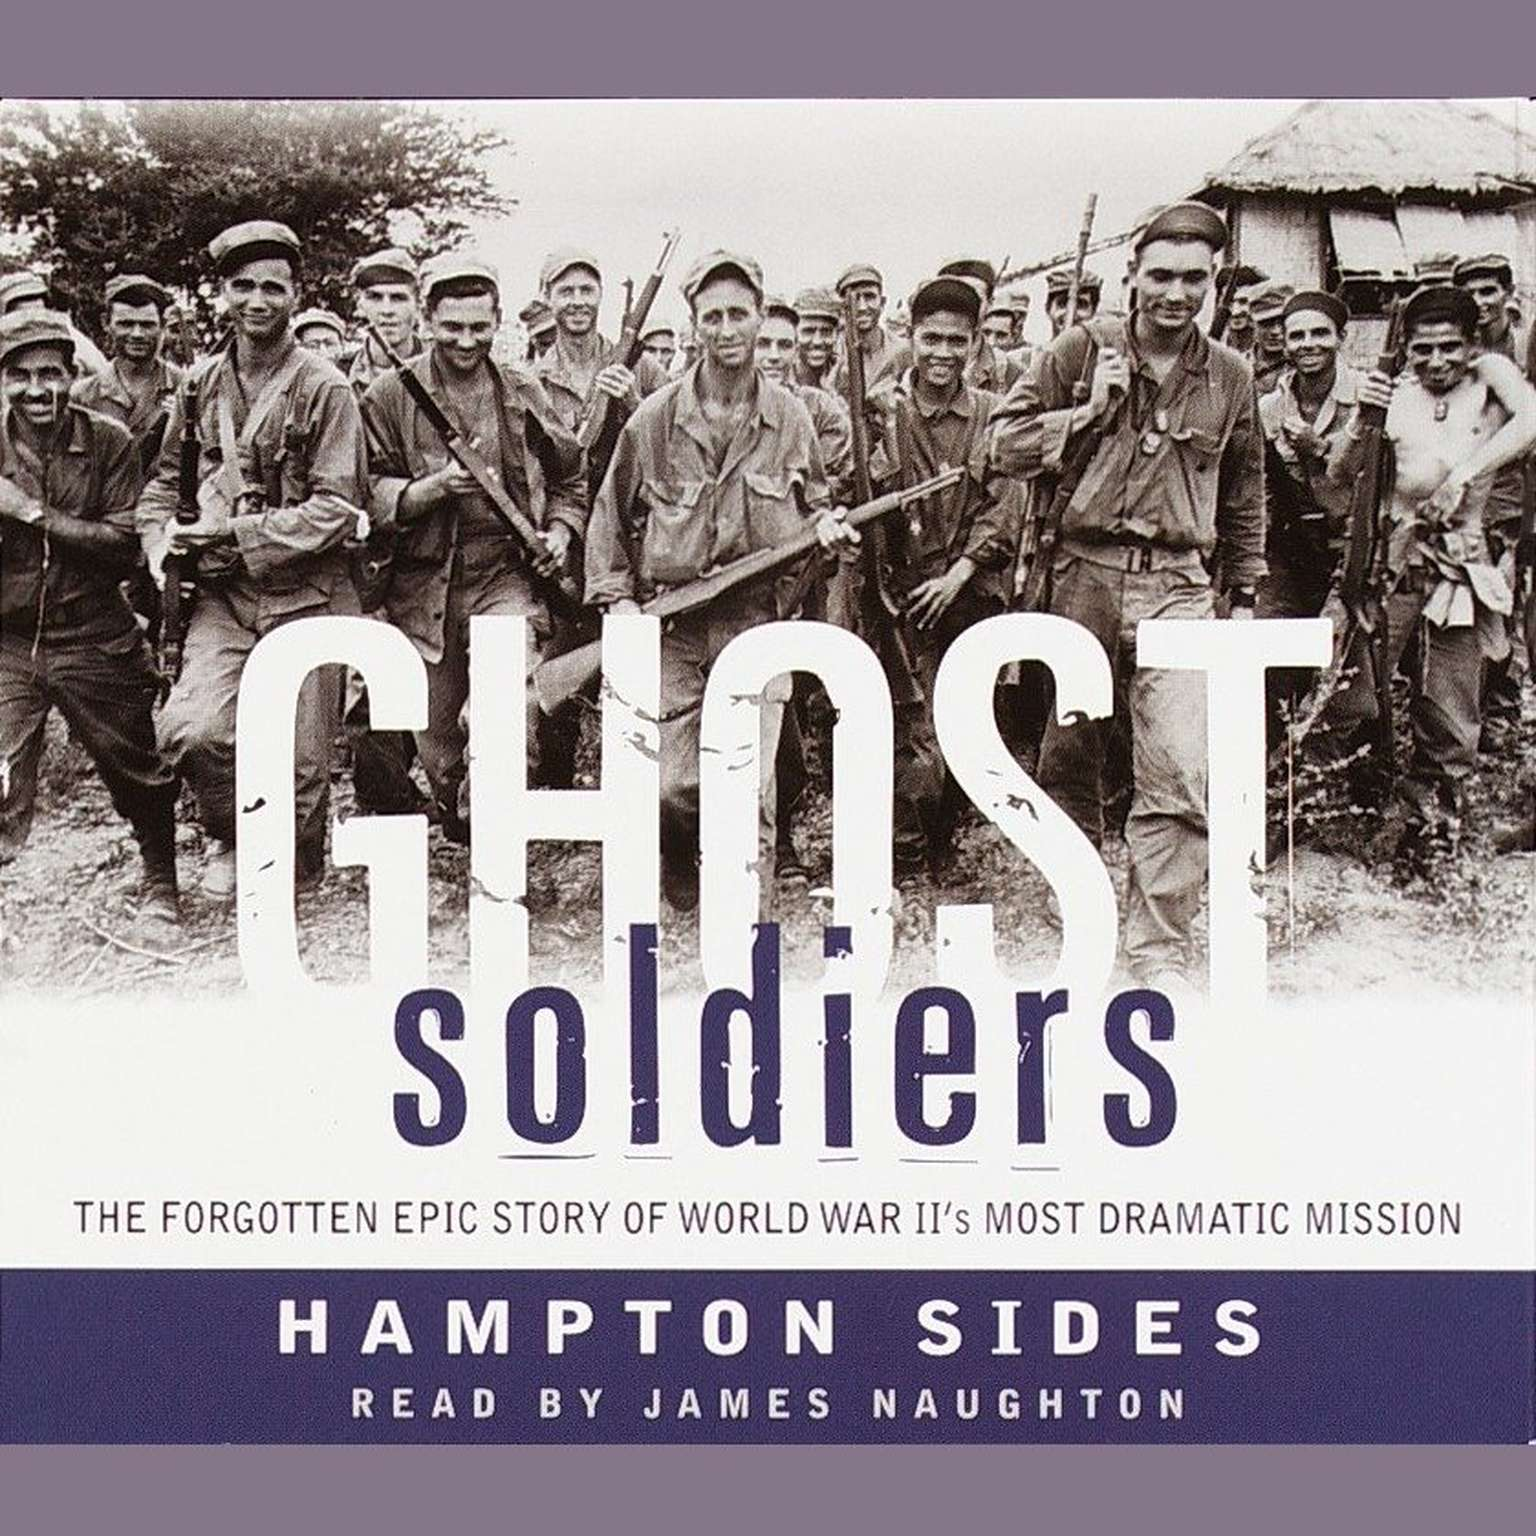 Printable Ghost Soldiers: The Forgotten Epic Story of World War II's Most Dramatic Mission Audiobook Cover Art